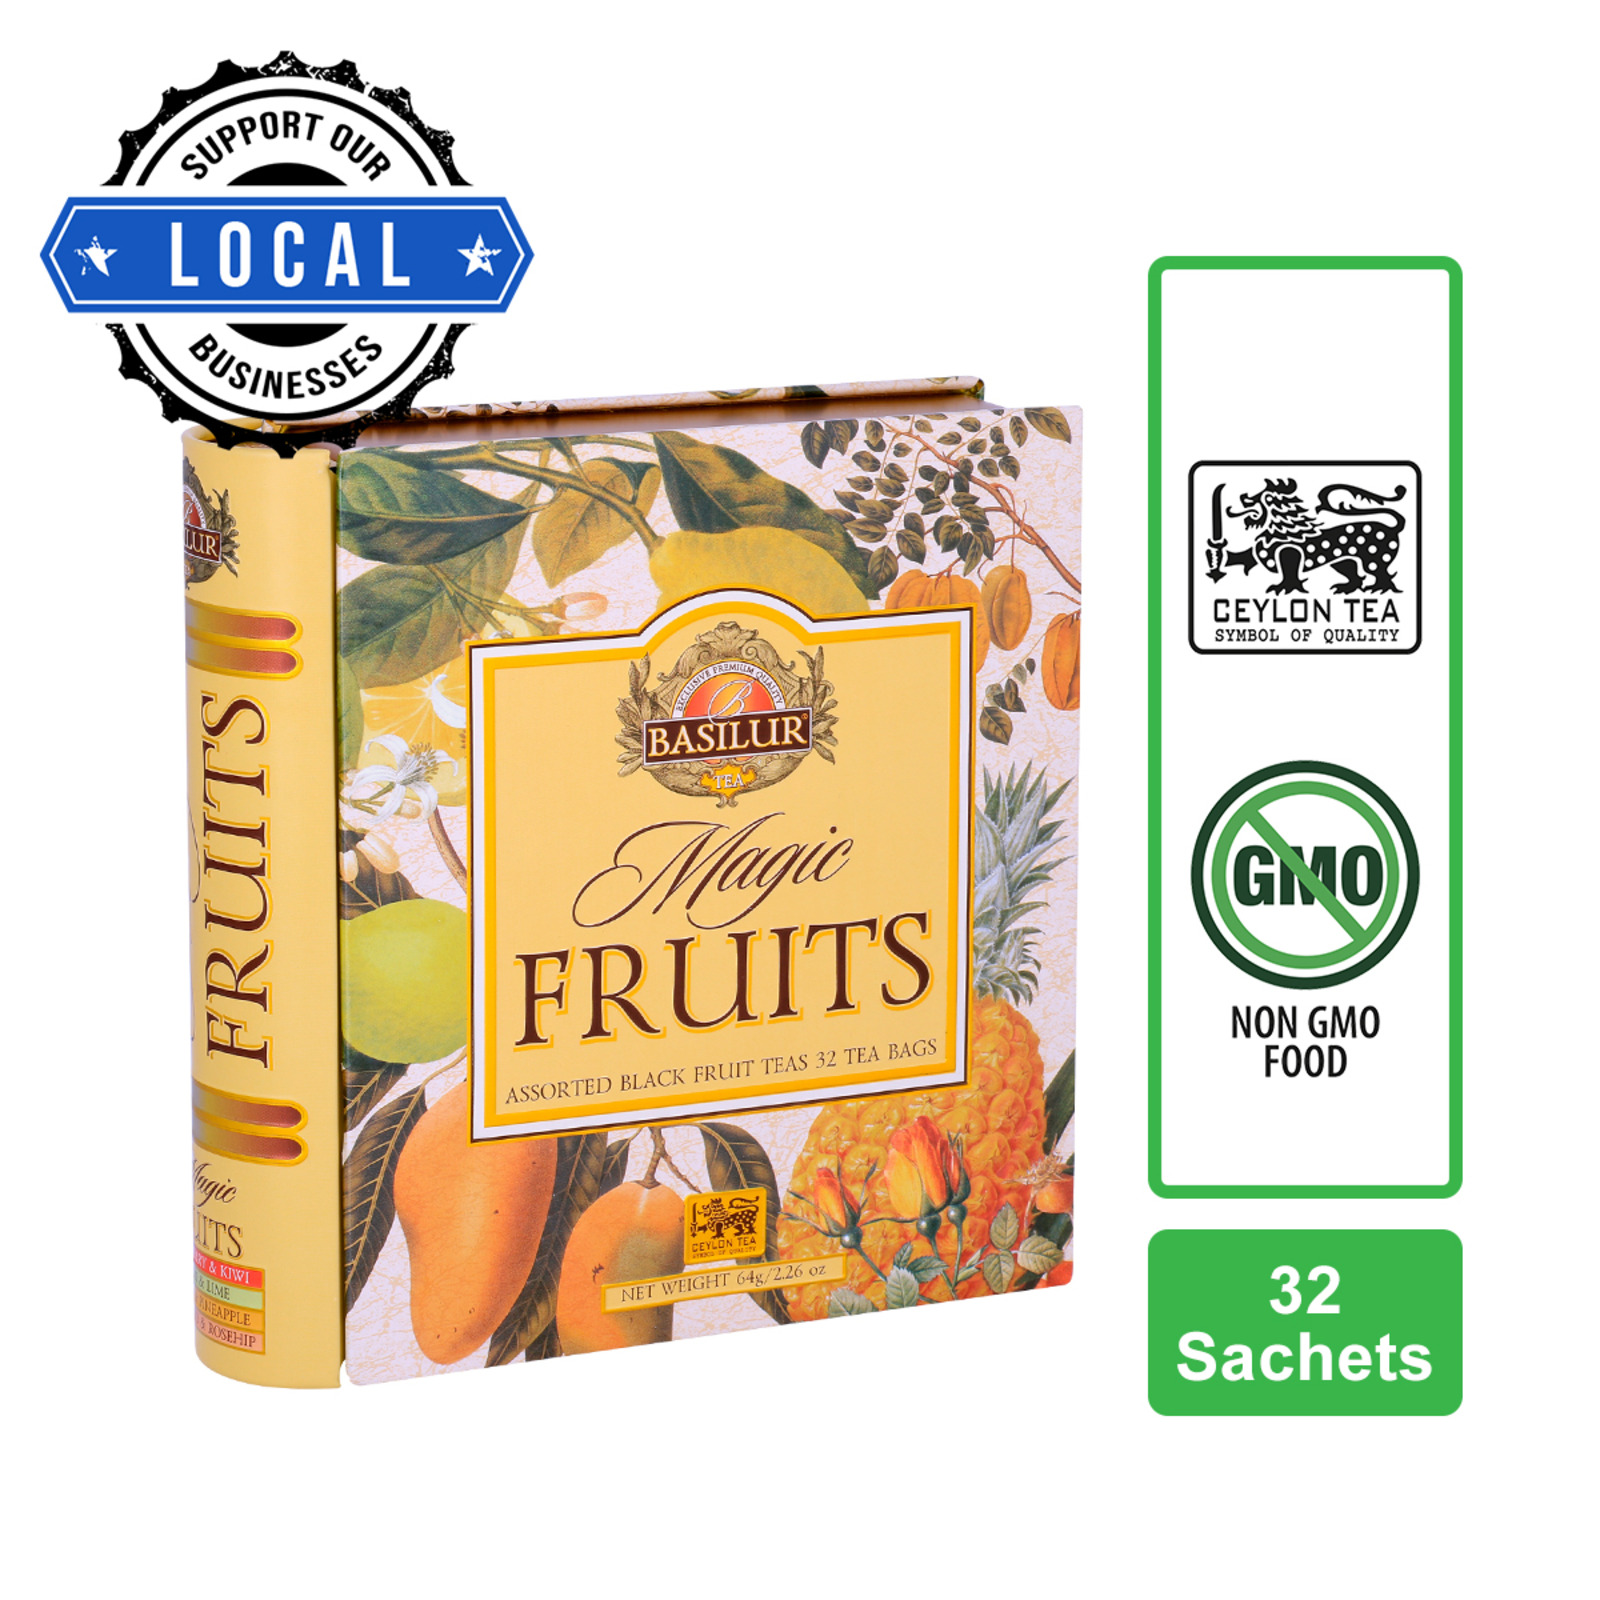 Basilur Assorted Book - Magic Fruits Black Tea